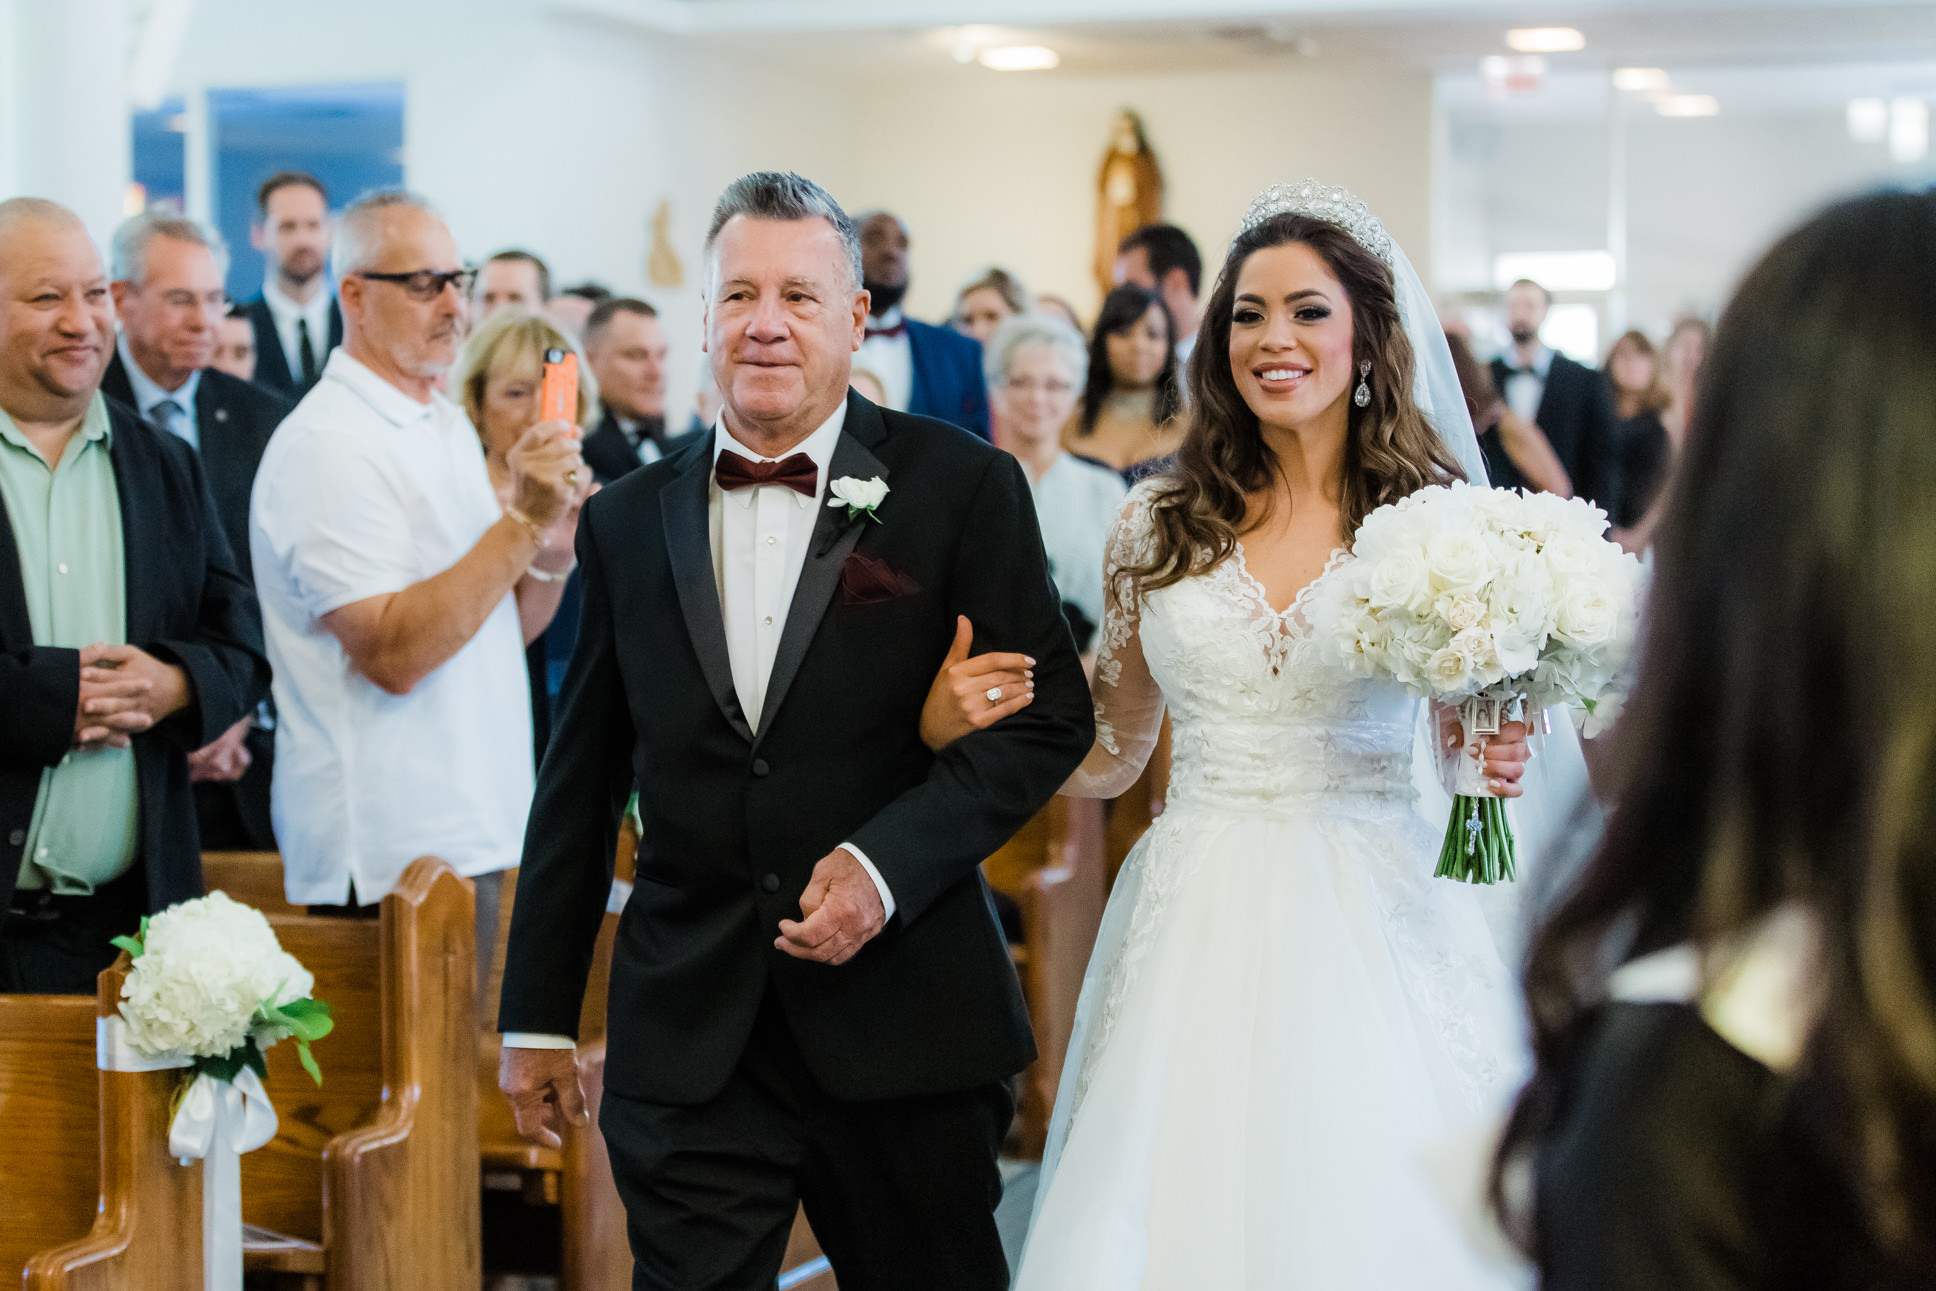 Tampa Bay Bride and Father Processional Walking Down the Wedding Ceremony Aisle Portrait